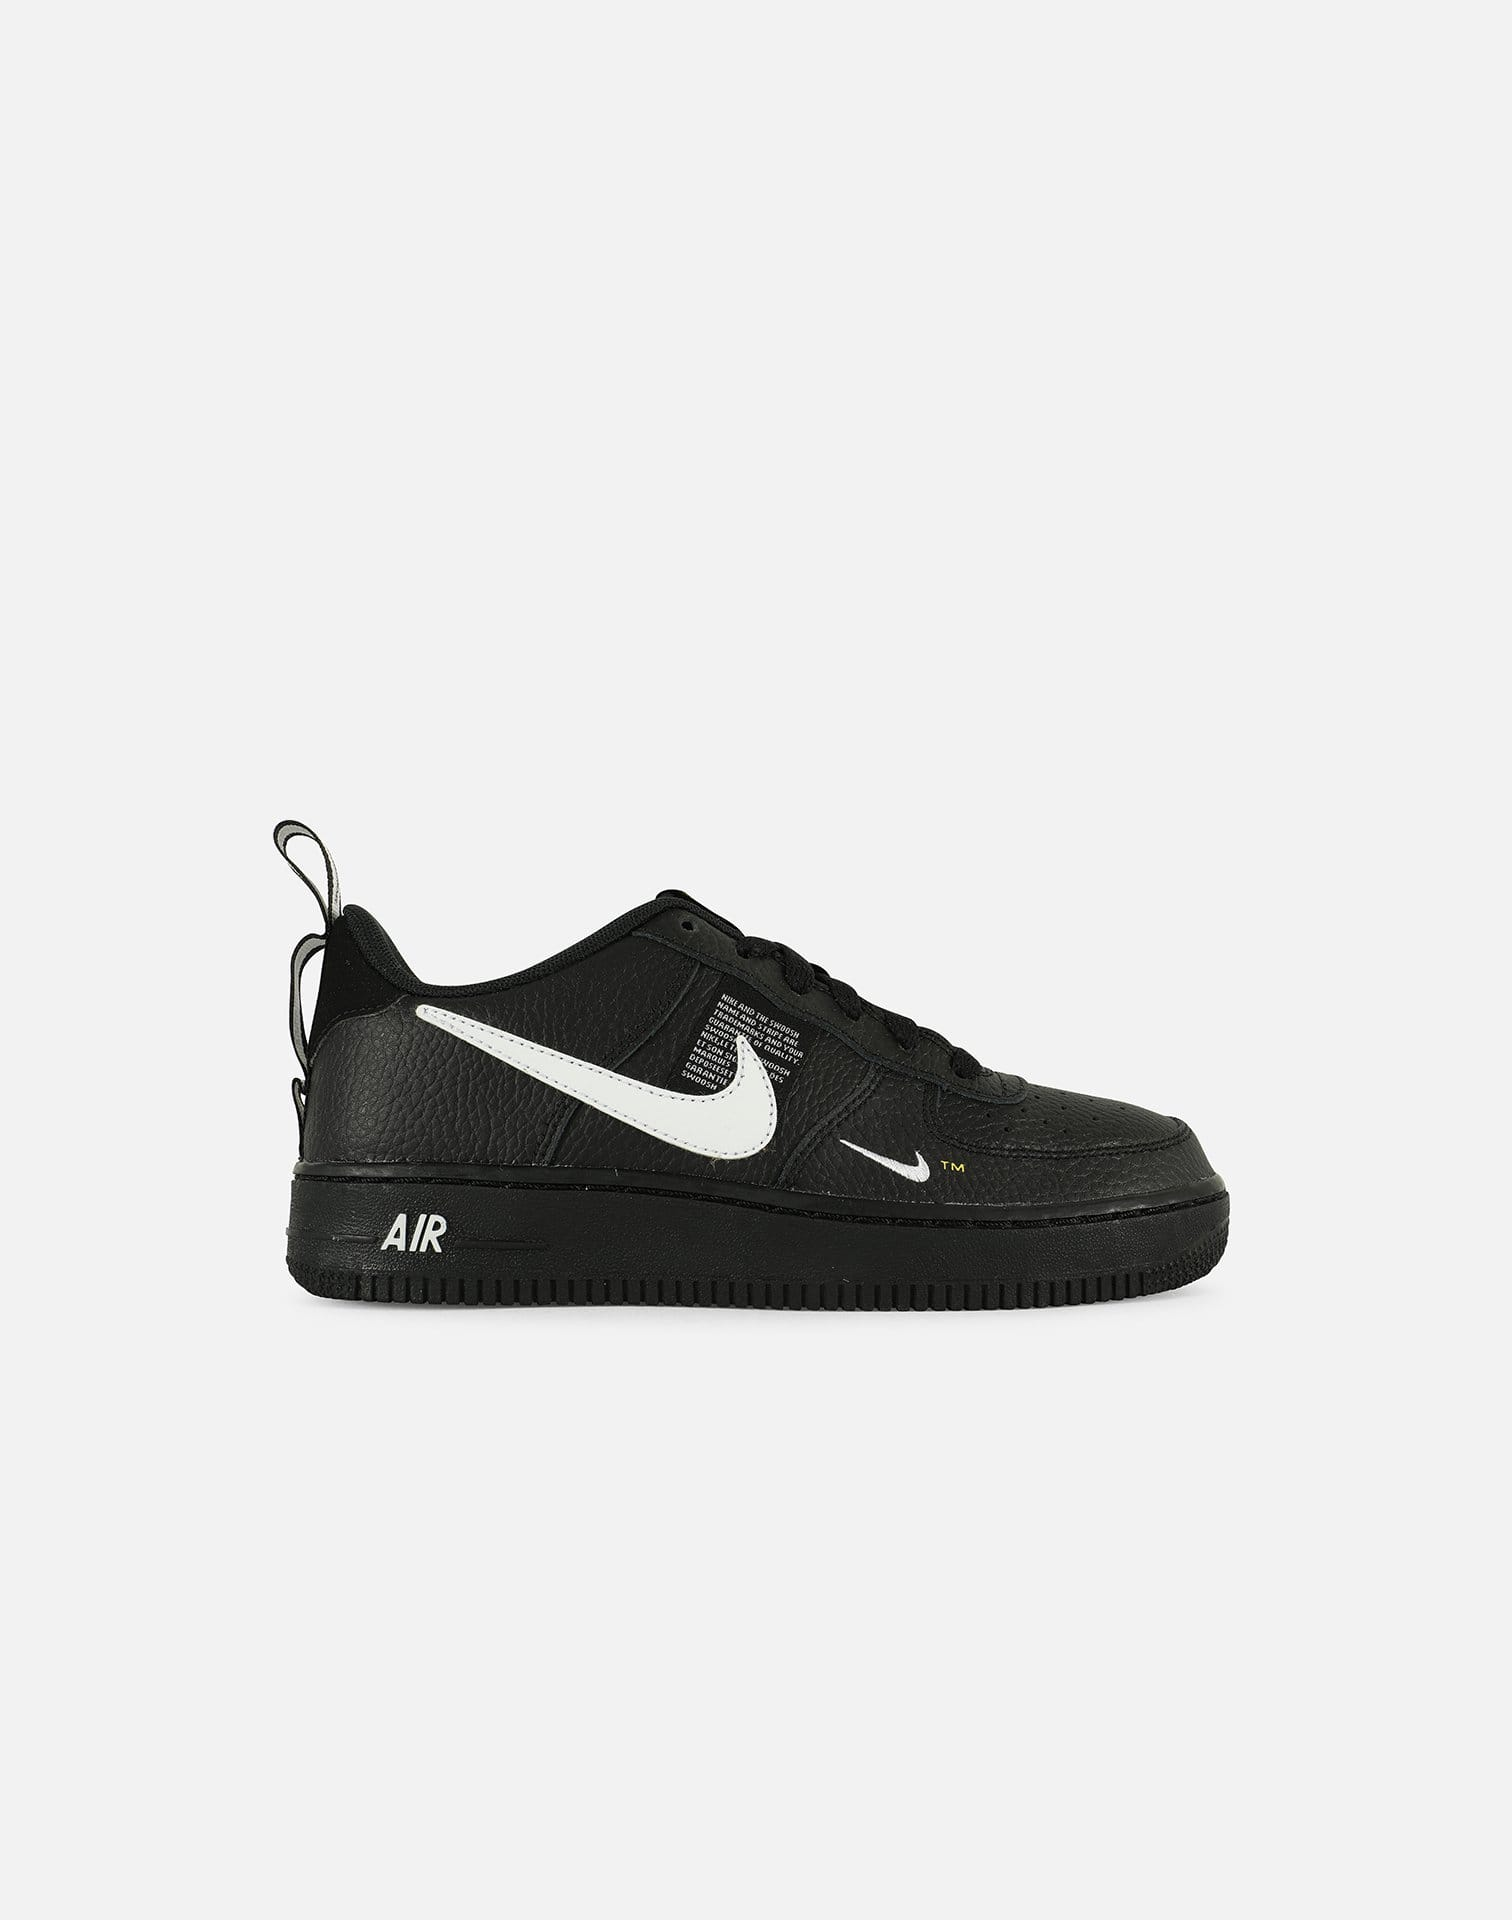 Nike Air Force 1 Low '07 LV8 Utility Grade-School